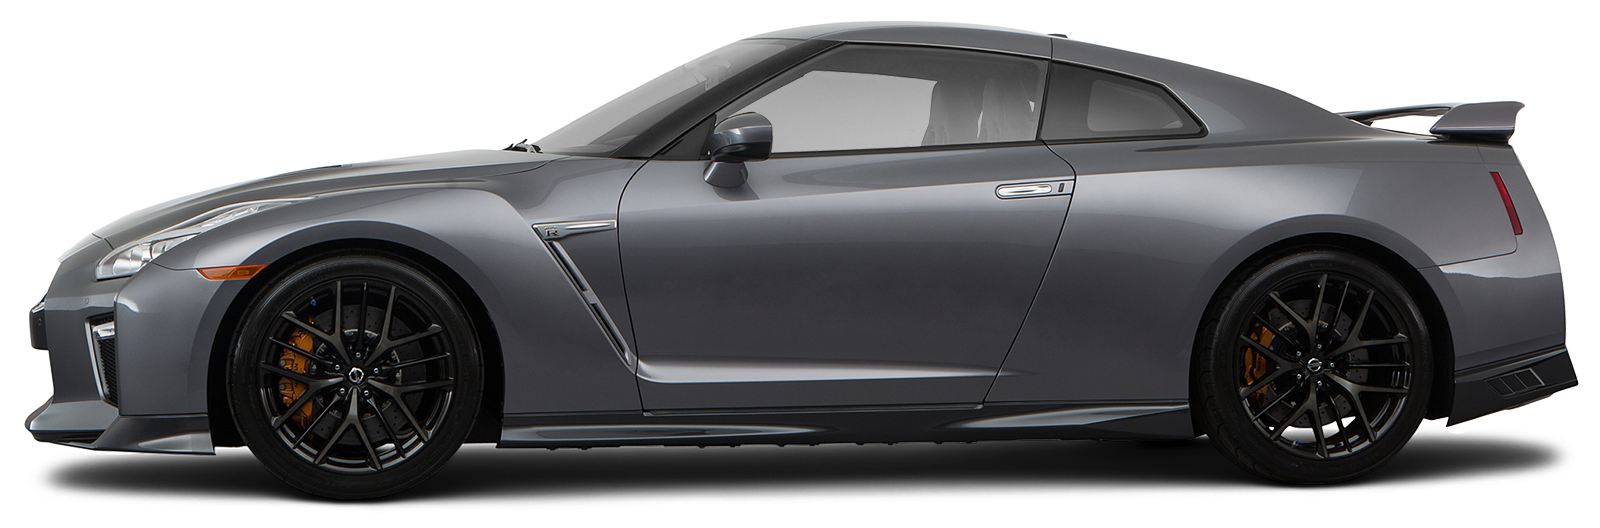 2019 Nissan GT-R Coupe Pure